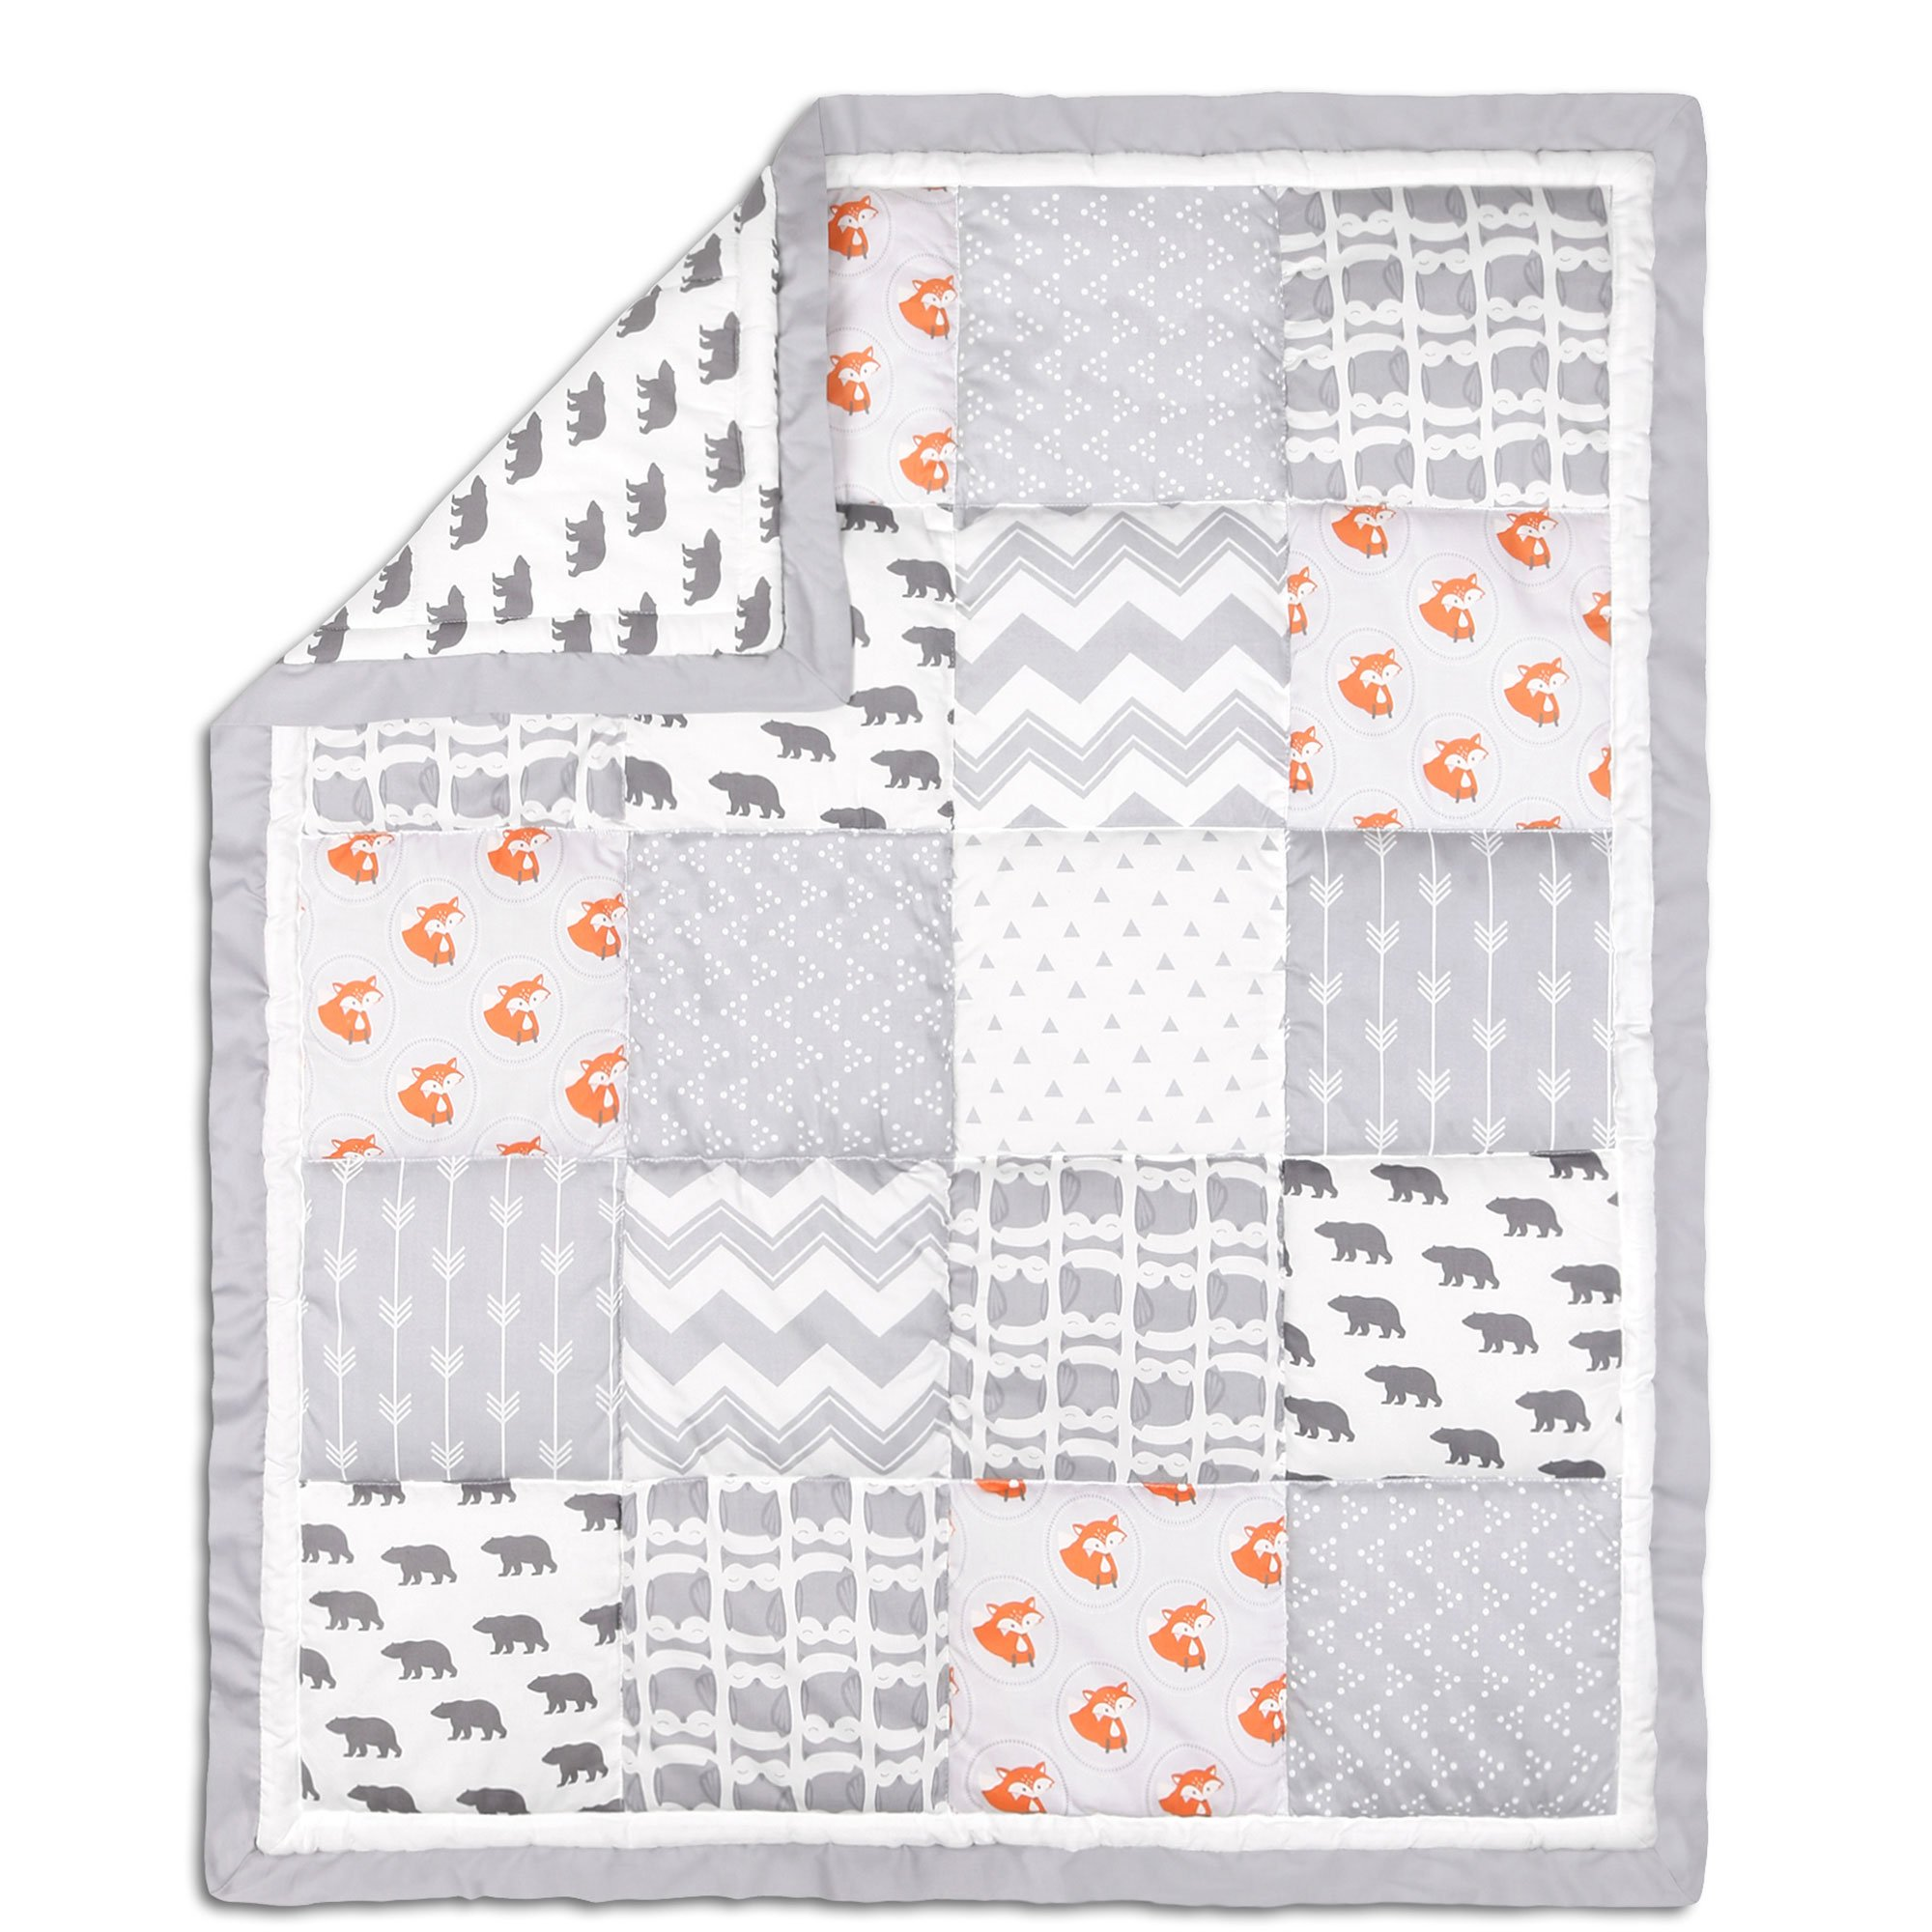 Grey and Orange Woodland Friends 3 Piece Crib Bedding Set by The Peanut Shell by The Peanut Shell (Image #2)